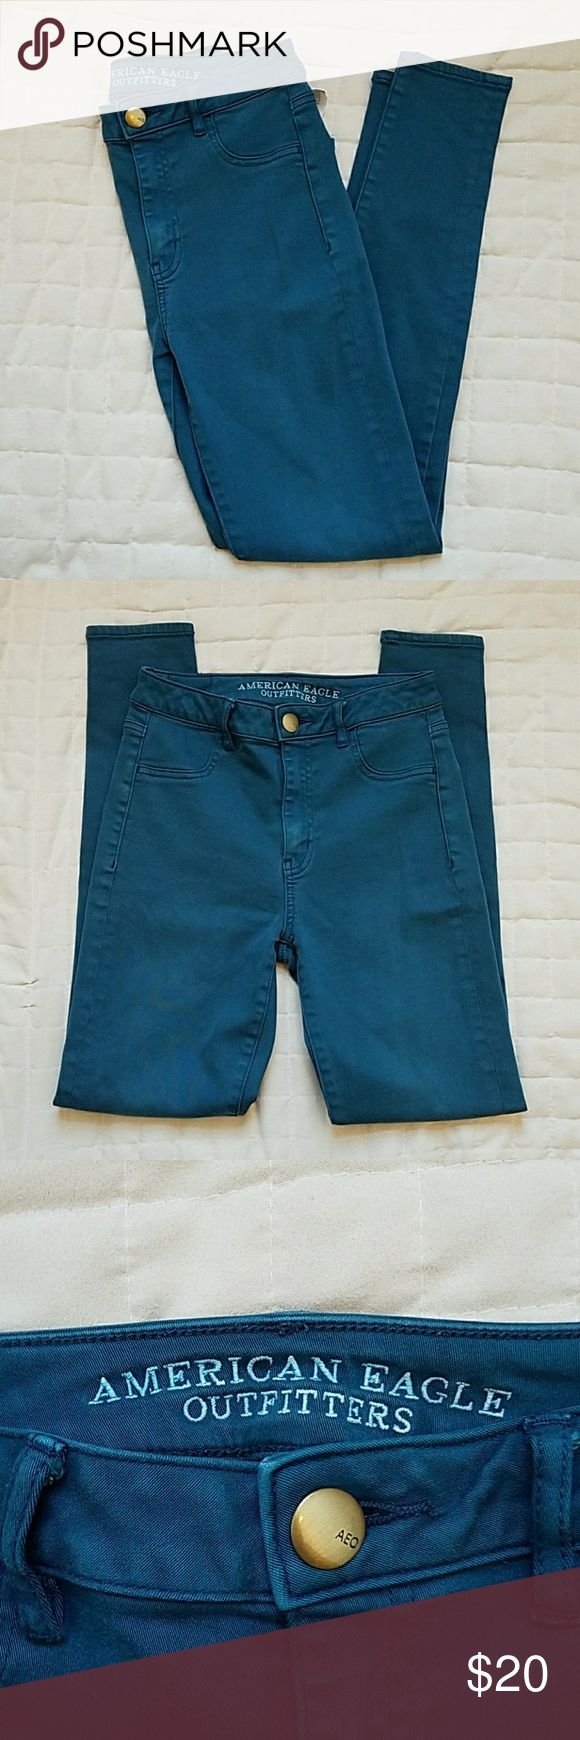 *FINAL PRICE* AE Teal Skinny Sky High Jeggings BNWOT American Eagle Sky High Jeggings Lovely teal color, perfect condition, super-soft fabric and perfect skinny jean leg! Size 2  Inseam: 28 in. Outer seam: 38 in. Leg opening: 4.5 in. American Eagle Outfitters Jeans Skinny